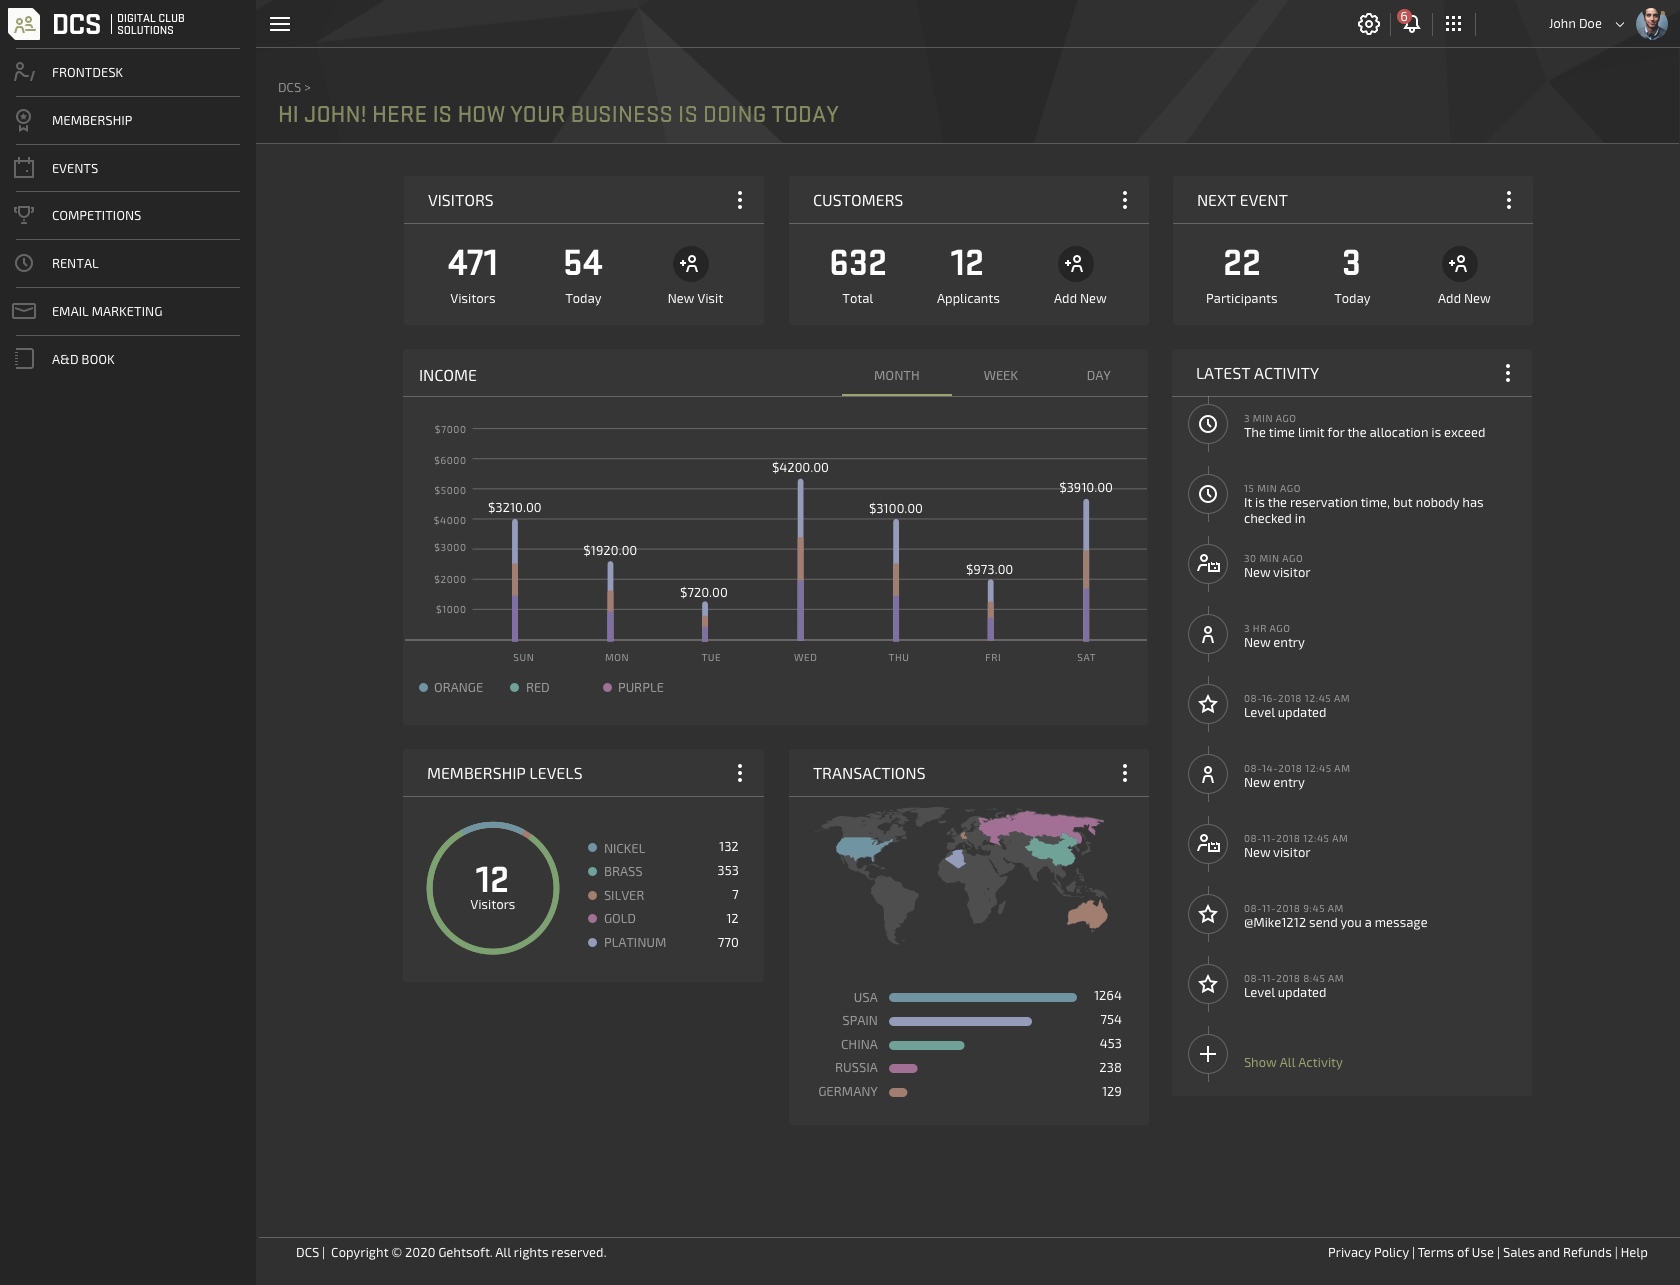 Dashboard image of DCS system